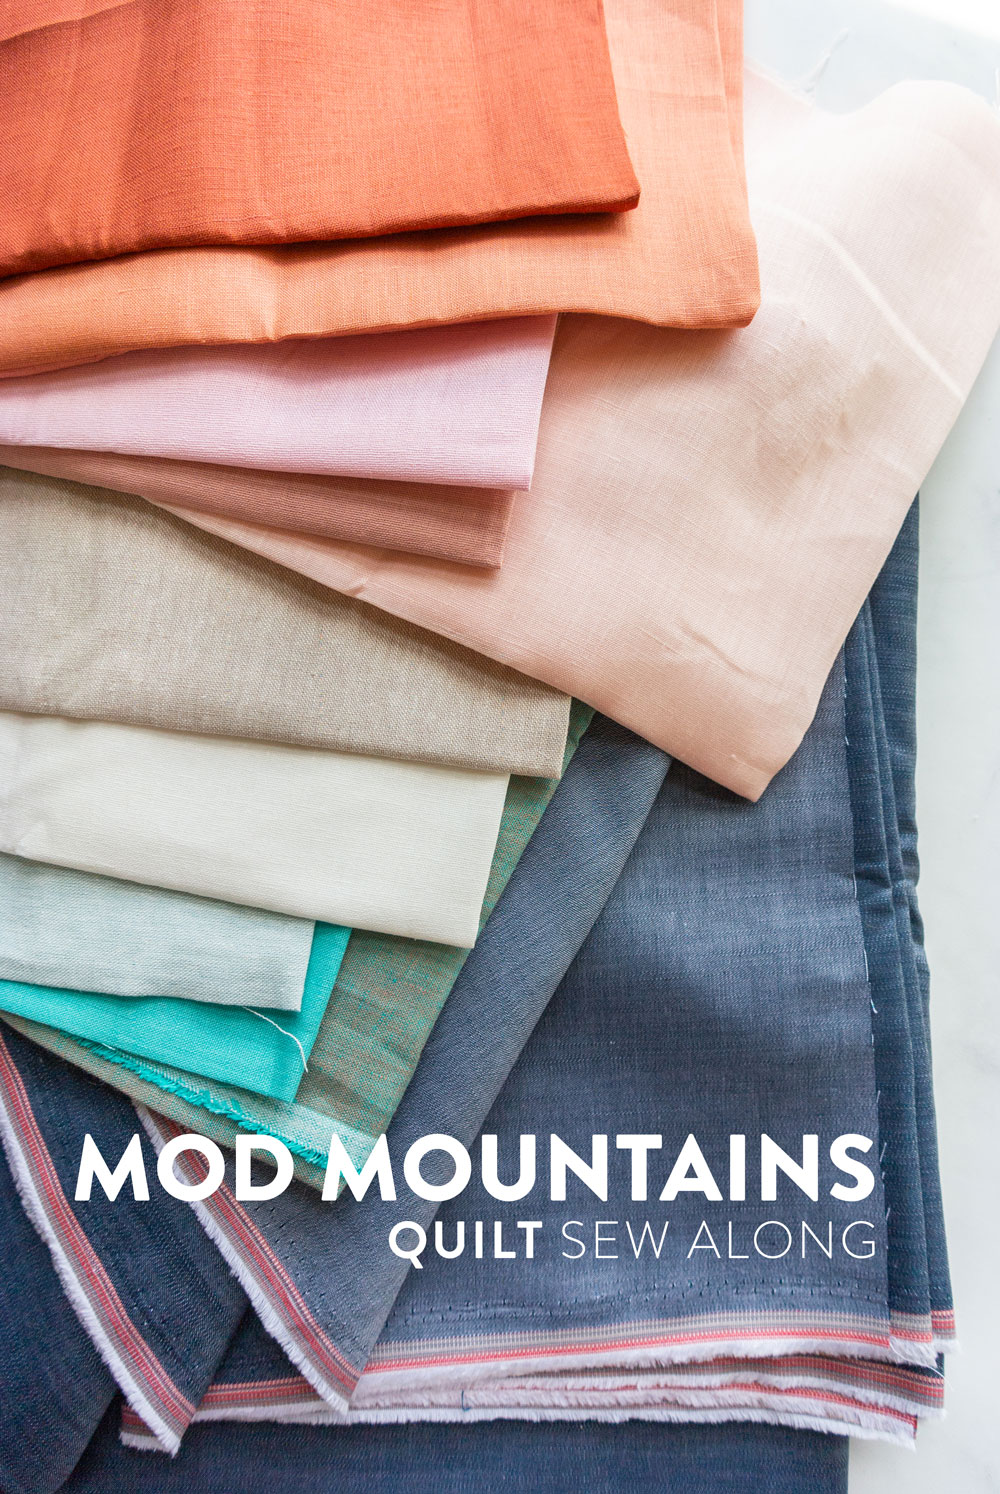 Join the Mod Mountains quilt pattern sew along! Learn new quilting skills and win weekly prizes as an online sewing community. Together we cover sewing with linen and different kinds of fabric, cutting with templates and sewing triangles. | Suzy Quilts